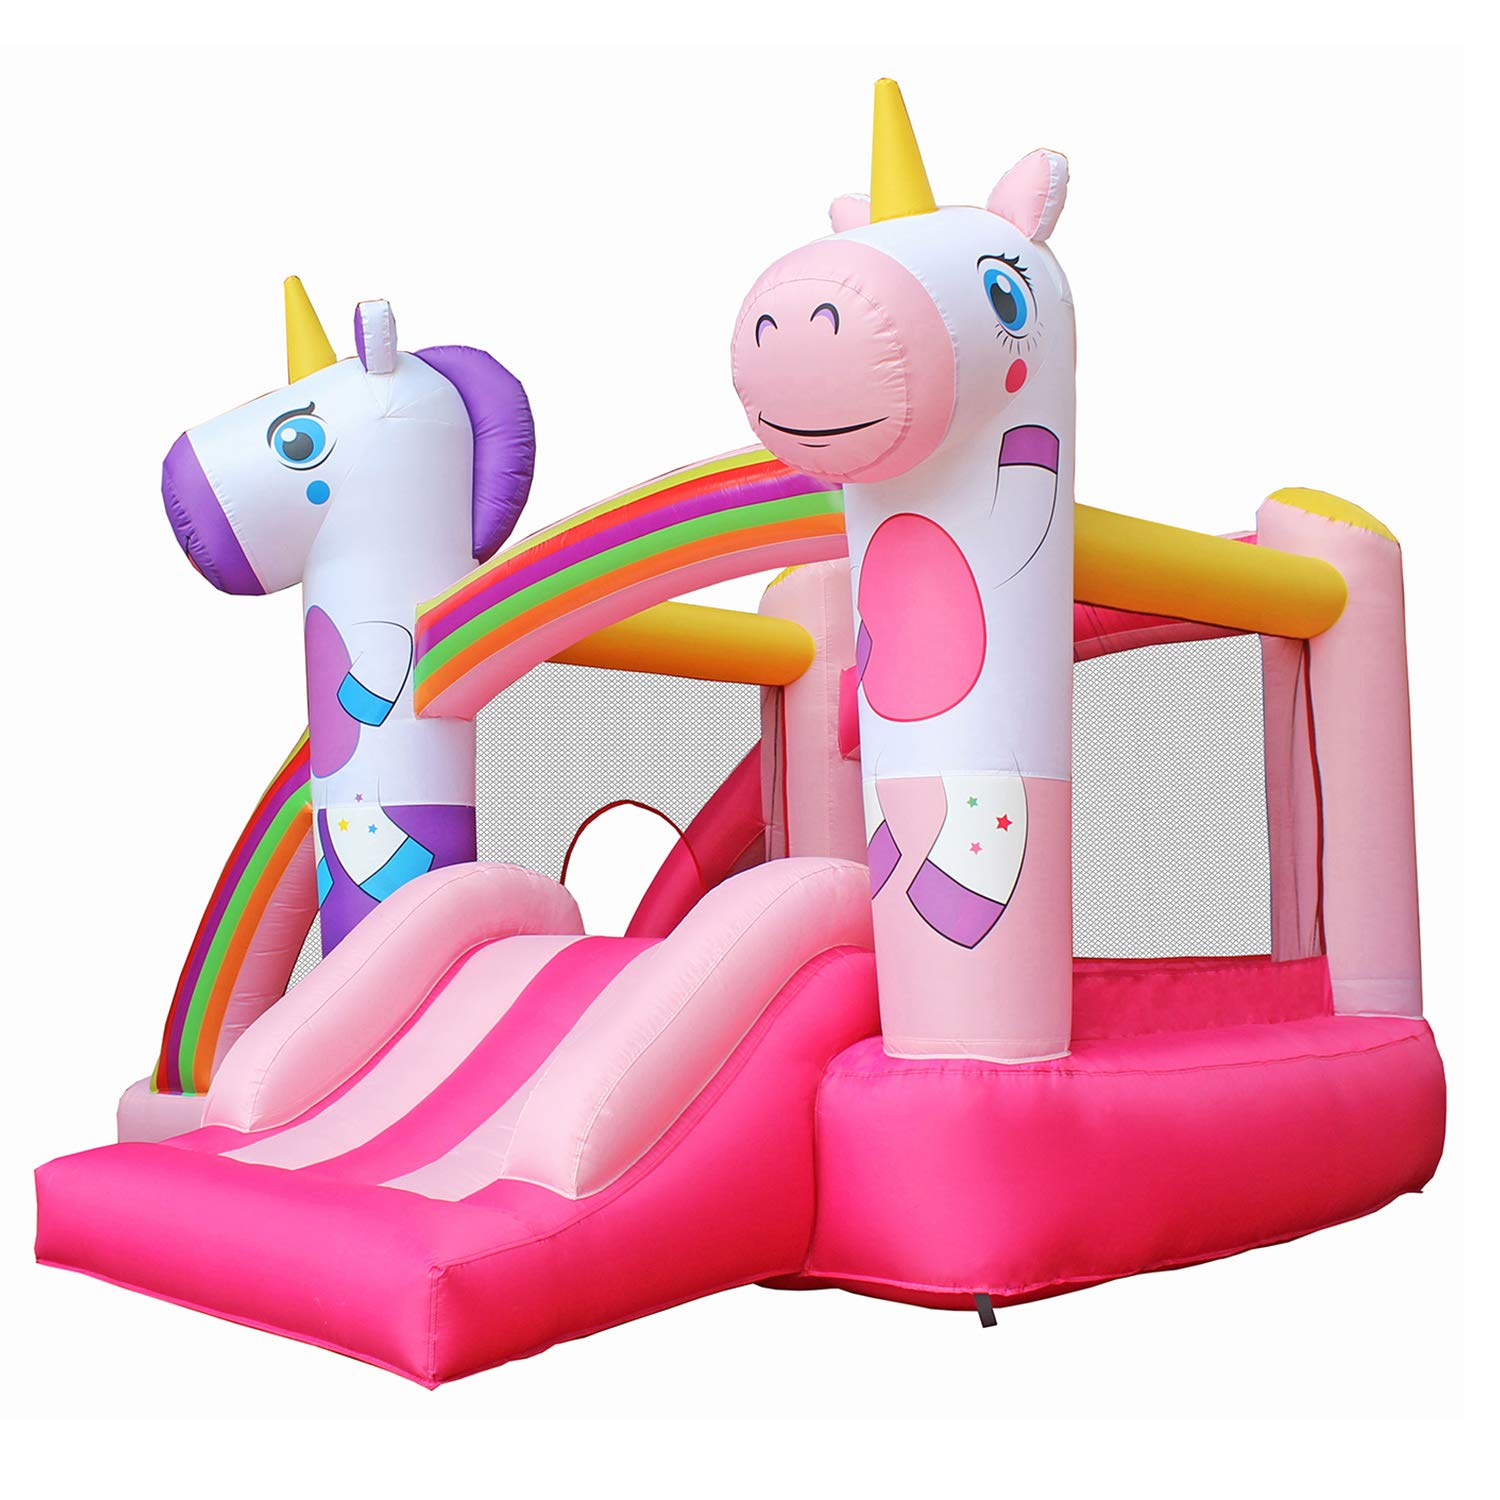 BESTPARTY Inflatable Bounce House with Slide for Princess Pink Unicorn Inflatable Bouncer House Jumper Houses by BESTPARTY (Image #2)